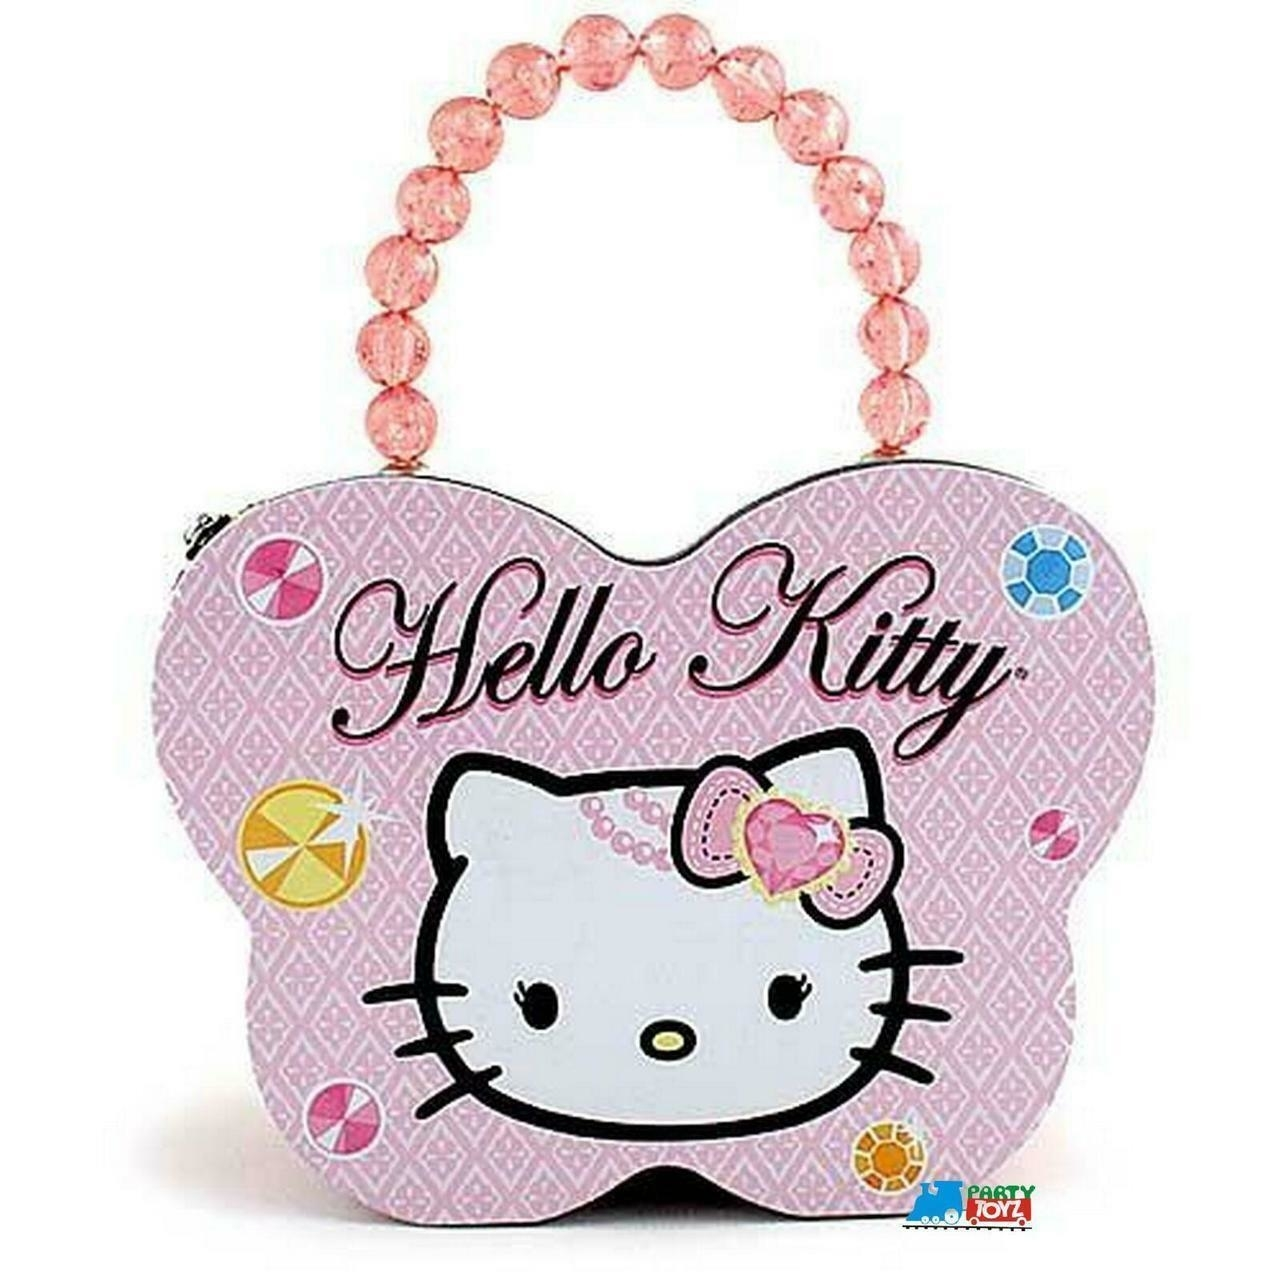 Hello Kitty Tin Stationery Clutch Beaded Butterfly Purse - Pink (ZA0901) photo